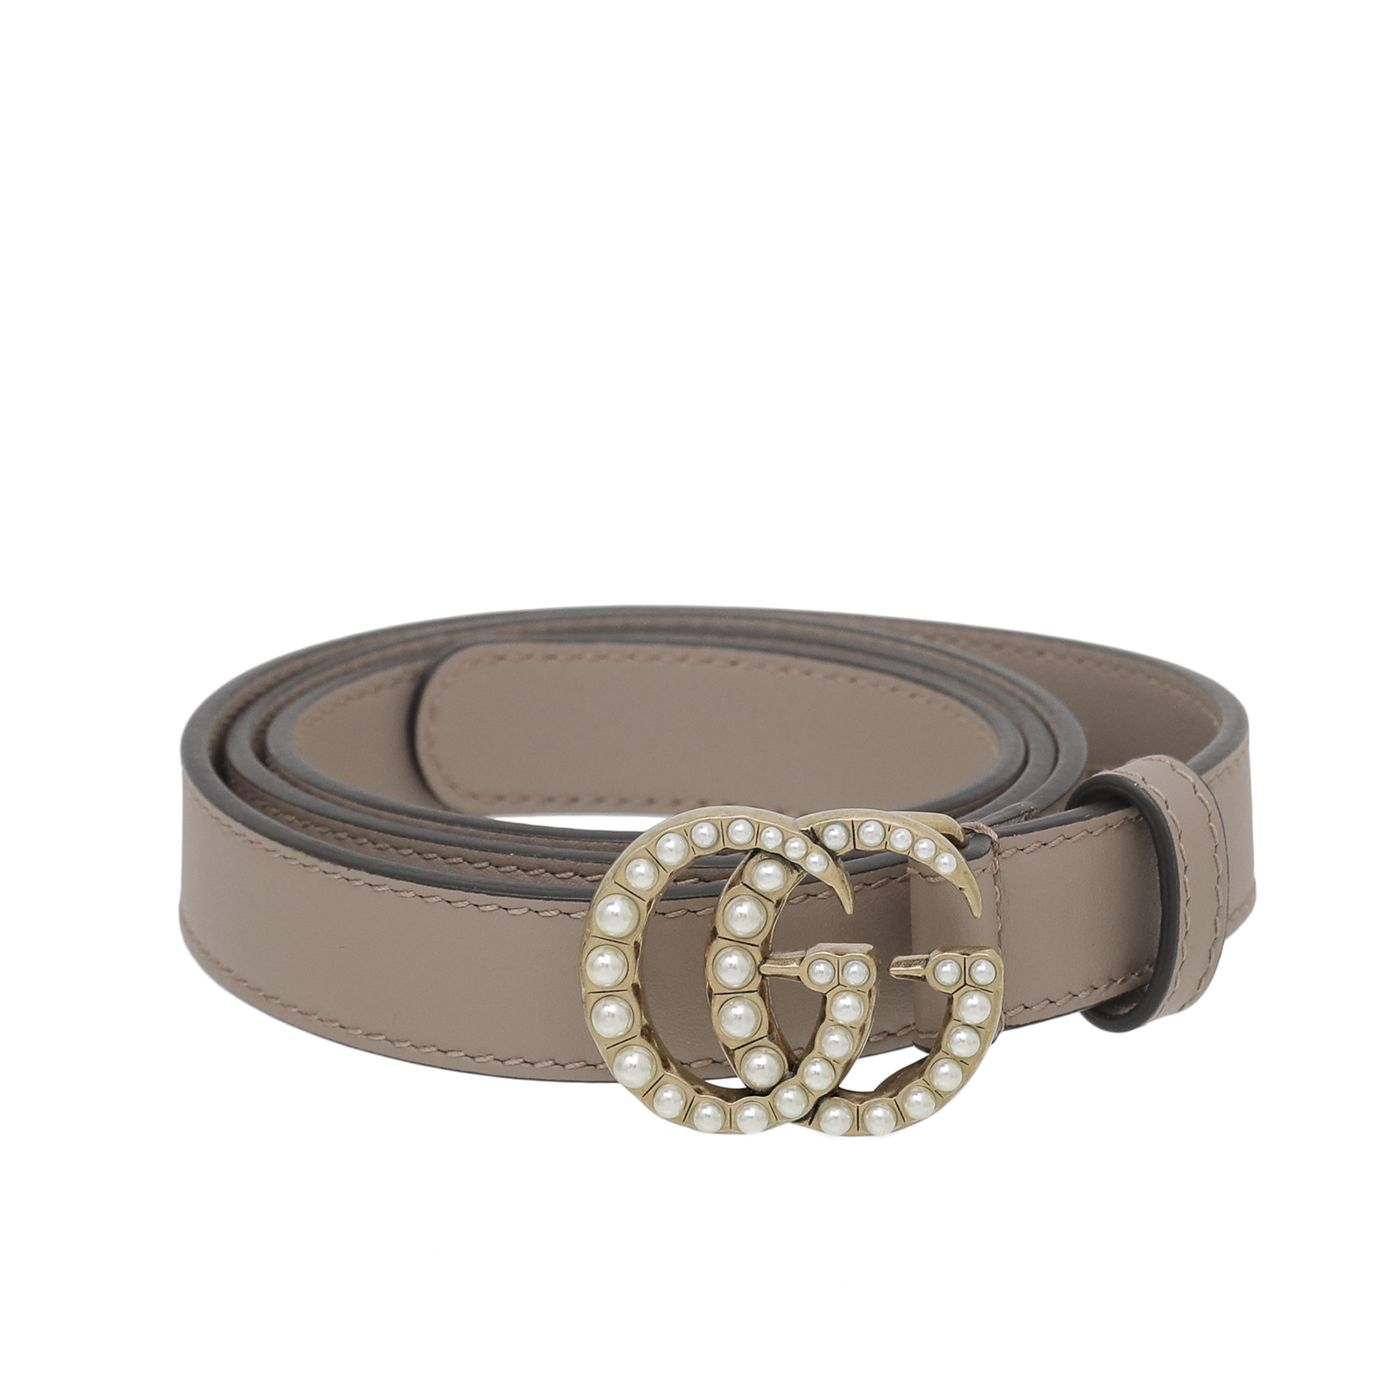 Gucci Nude Pink Pearl GG Marmont Buckle Belt 34